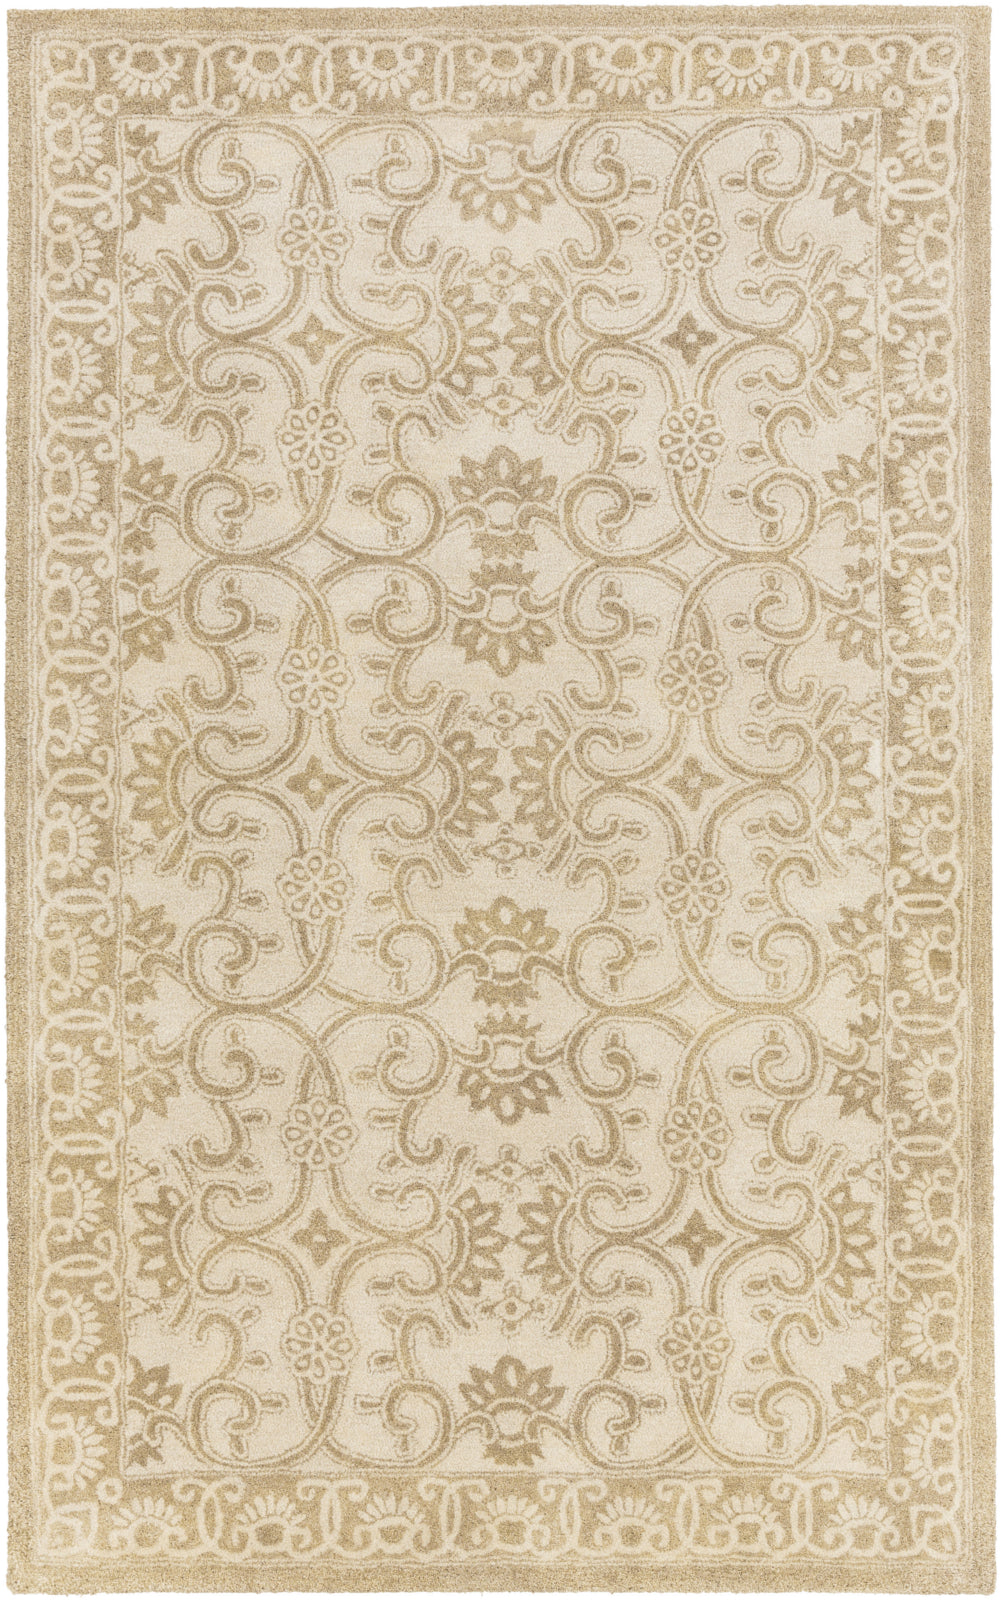 Surya SMI-2159 Area Rug by Smithsonian main image